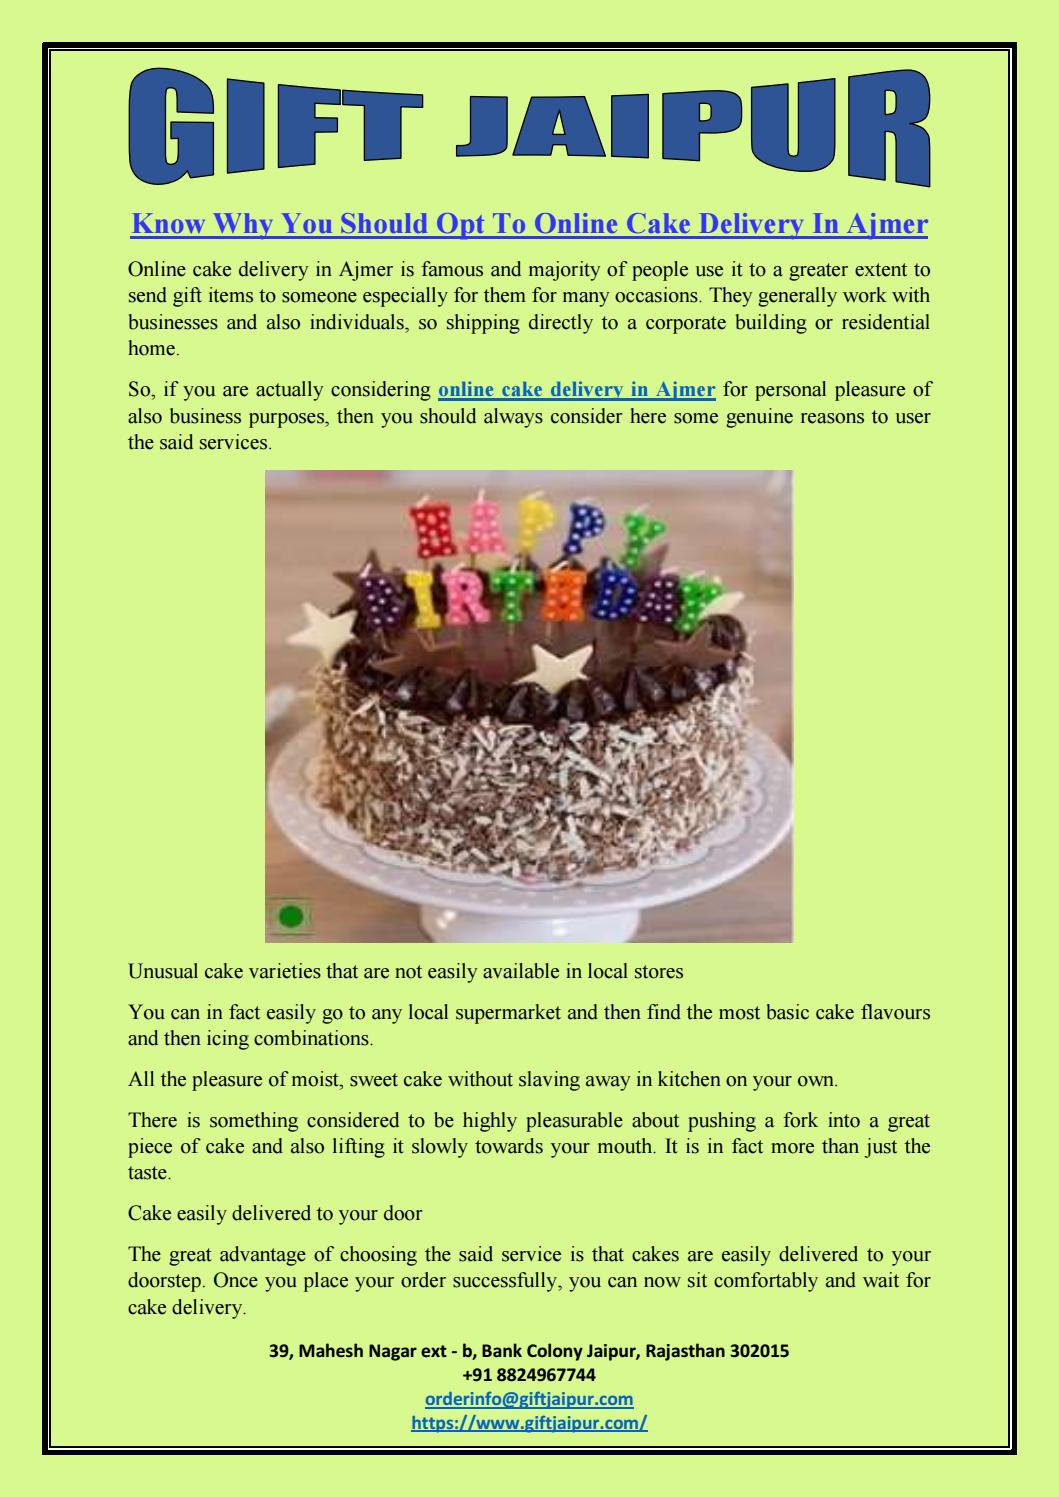 Know Why You Should Opt To Online Cake Delivery In Ajmer By Gift Jaipur